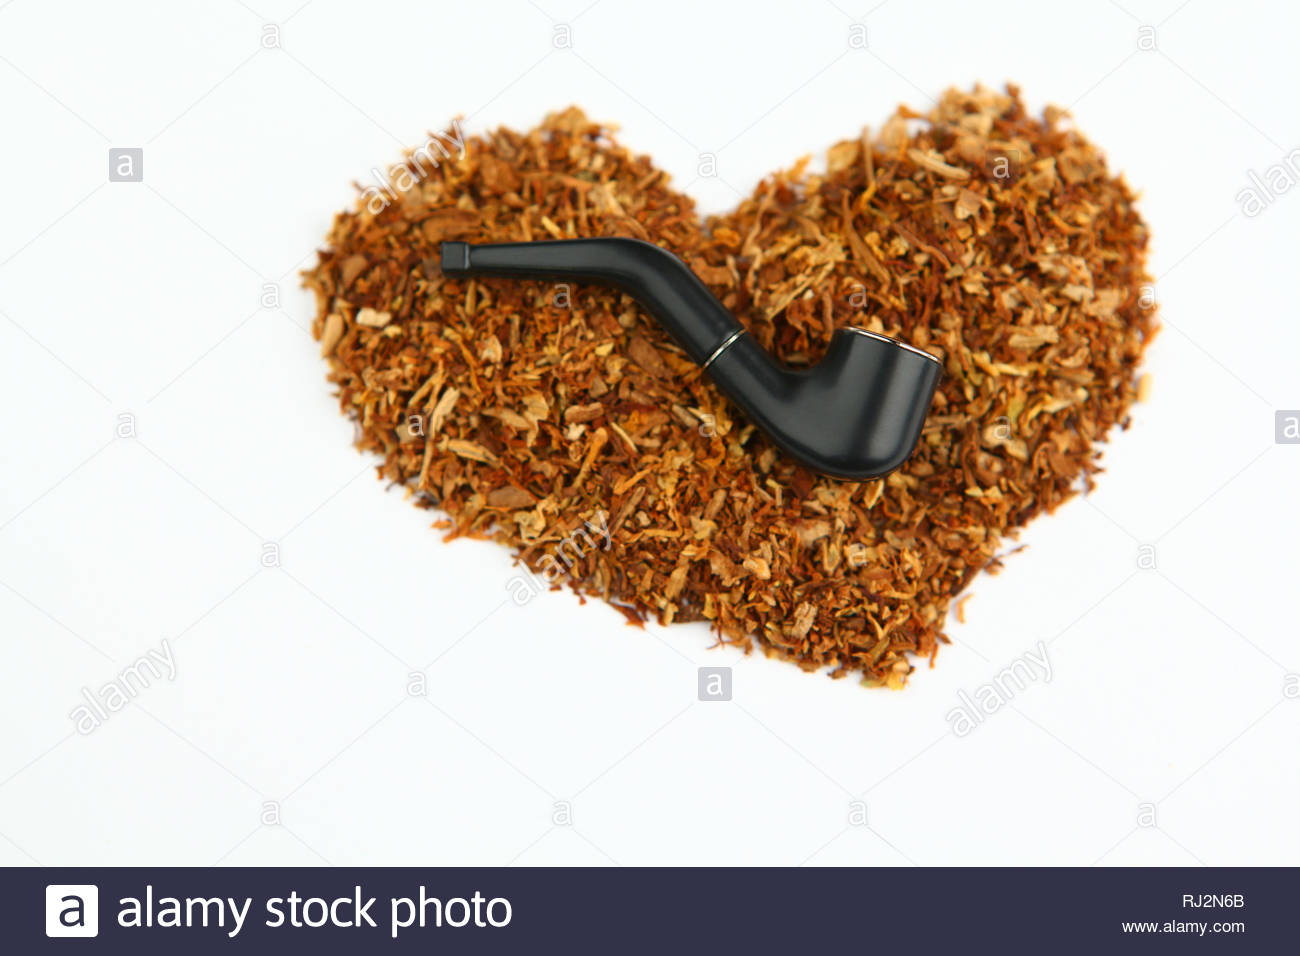 Tobacco Heart Stock Photos & Tobacco Heart Stock Images - Alamy